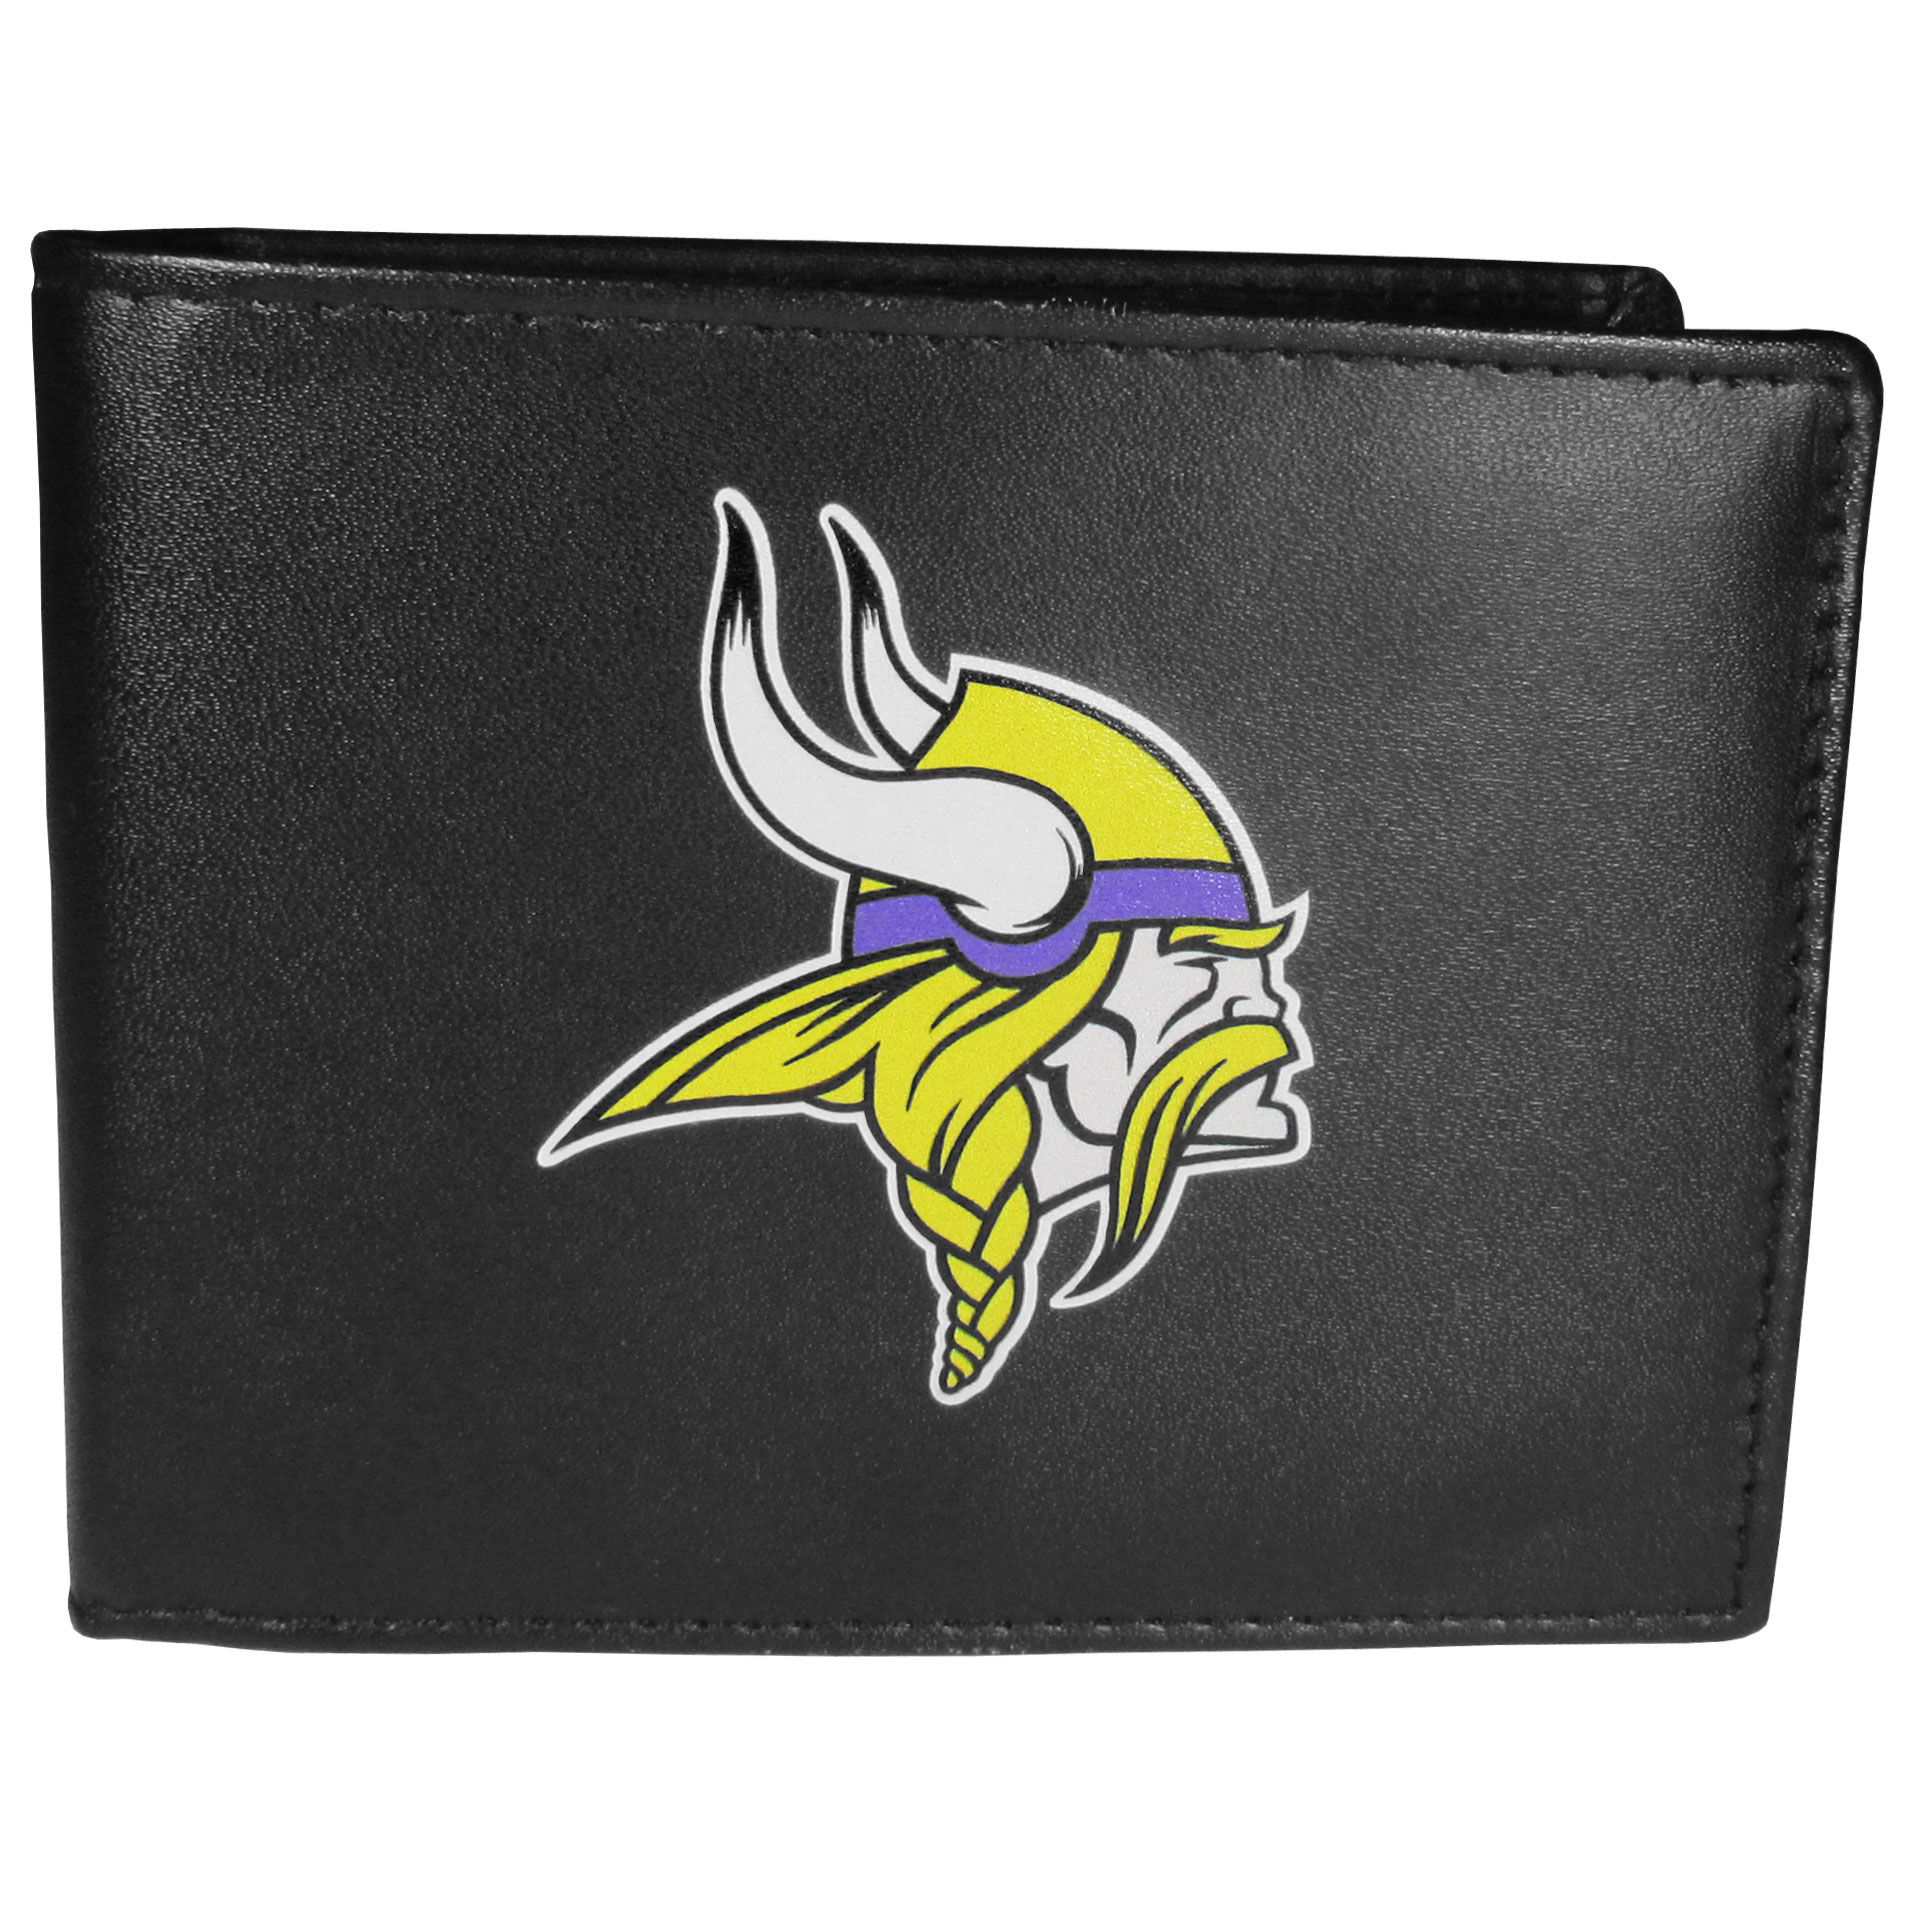 Minnesota Vikings Leather Bi-fold Wallet, Large Logo - Our classic fine leather bi-fold wallet is meticulously crafted with genuine leather that will age beautifully so you will have a quality wallet for years to come. The wallet opens to a large, billfold pocket and numerous credit card slots and has a convenient windowed ID slot. The front of the wallet features an extra large Minnesota Vikings printed logo.